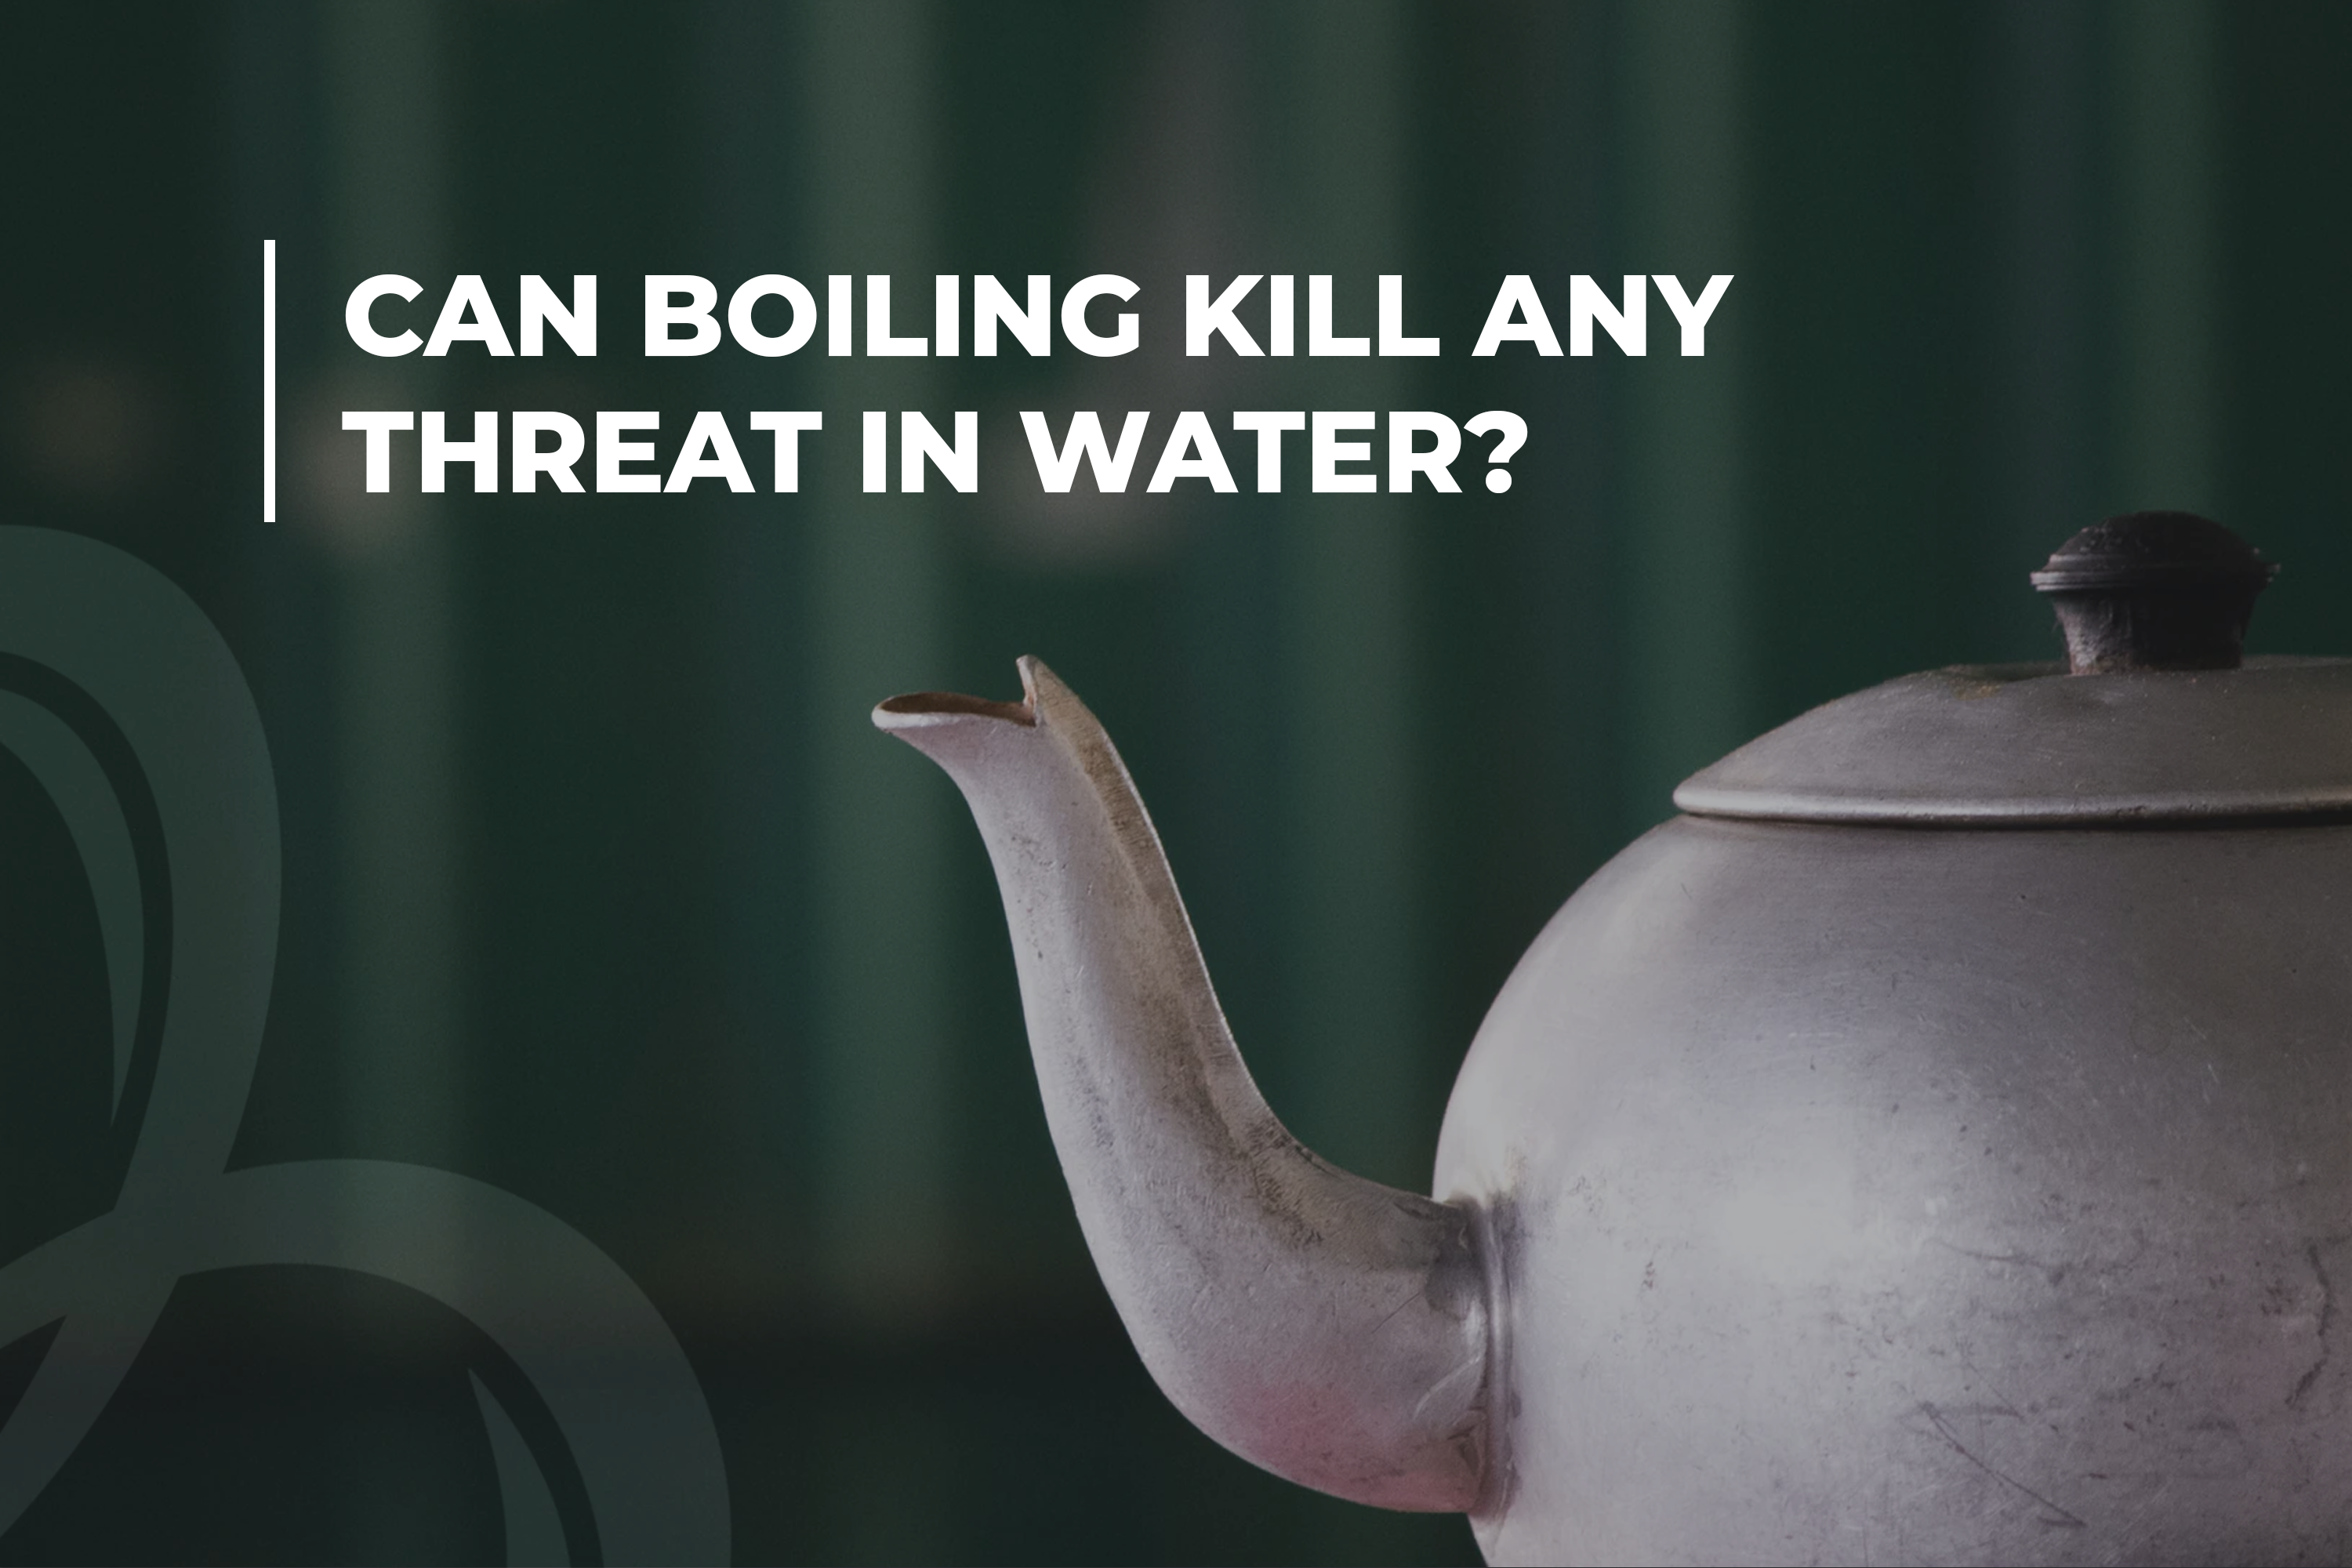 Can Boiling Kill Any Threat In Water